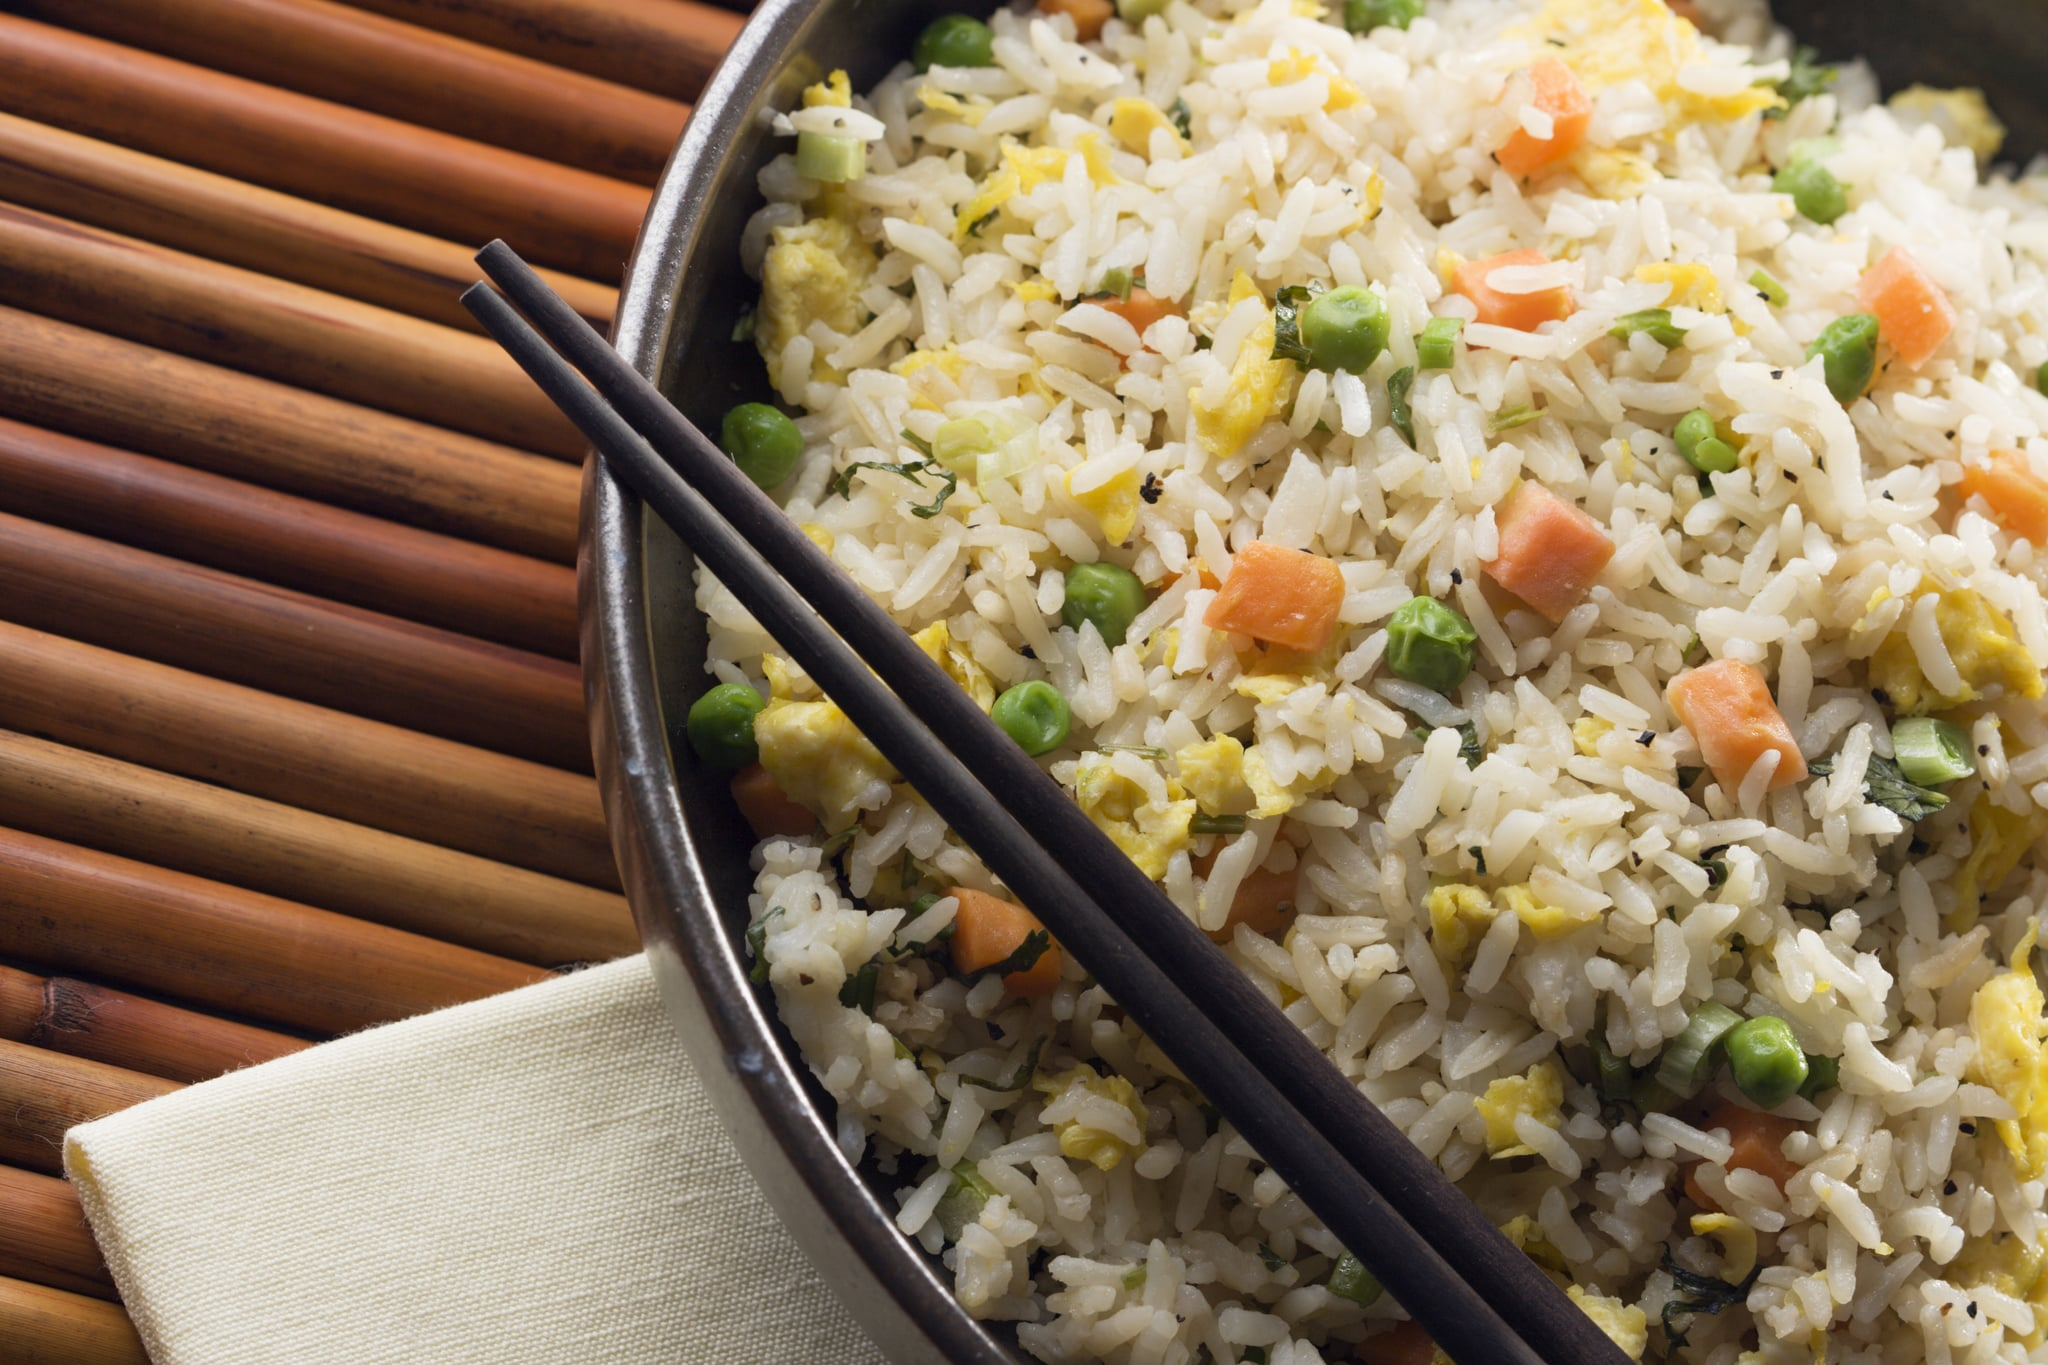 Subject: Traditional authentic Chinese Fried rice served in a bowl.